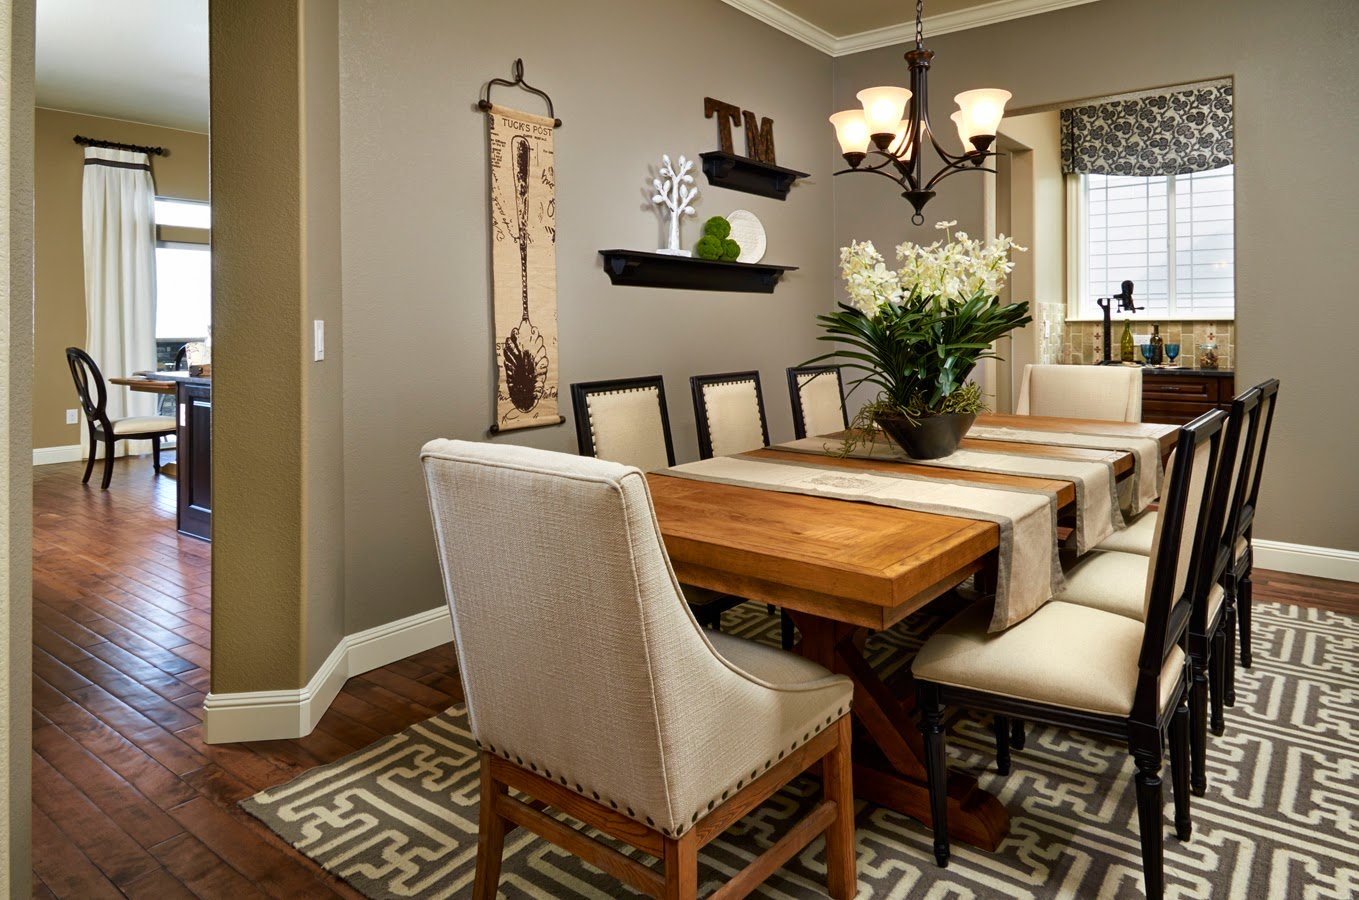 Dining room furniture arrangement ideas and tips kukun for Formal dining table centerpiece